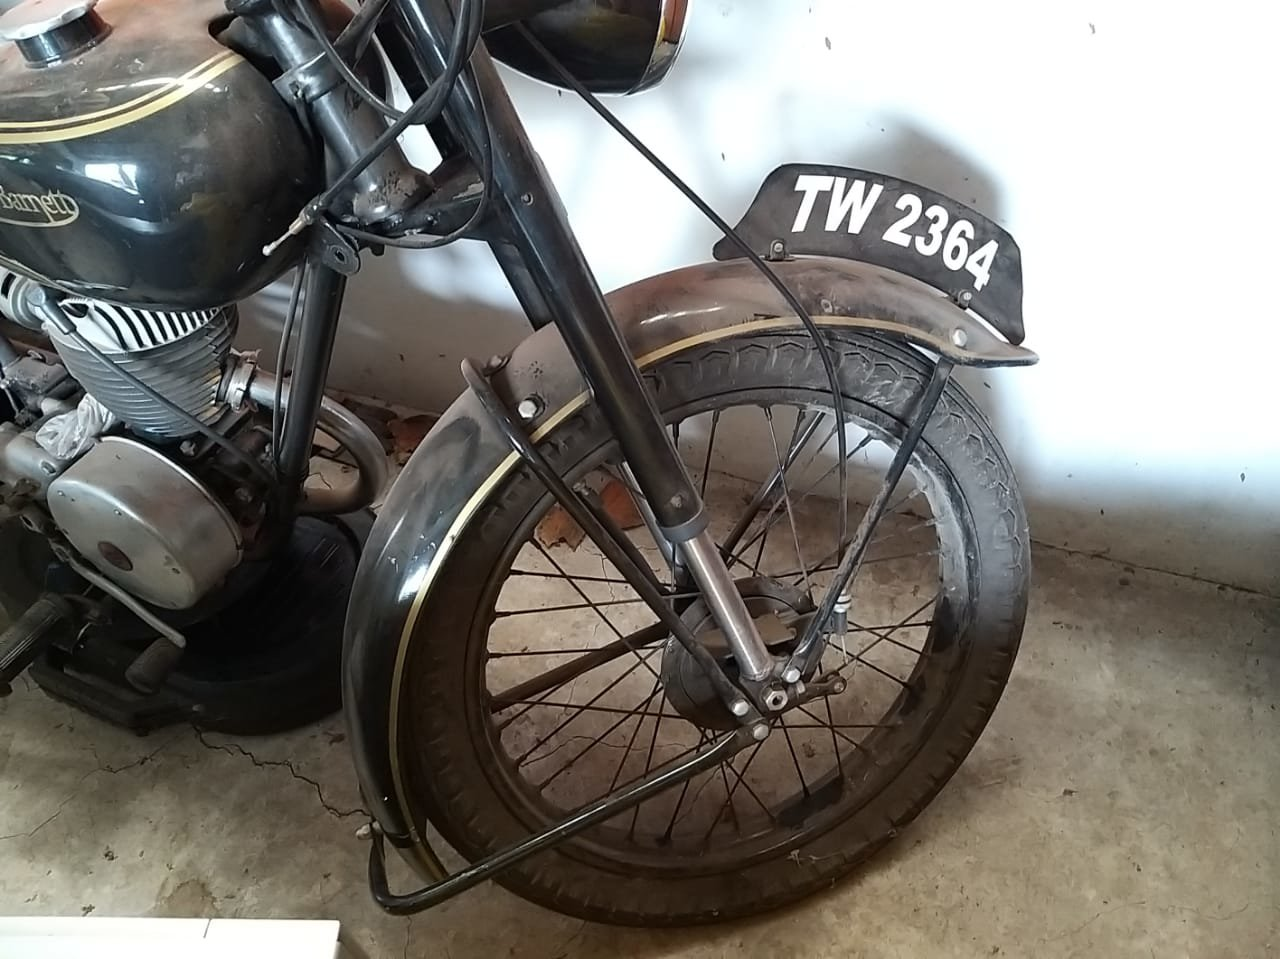 1952 Francis Barnett Motorcycle For Sale (picture 4 of 6)